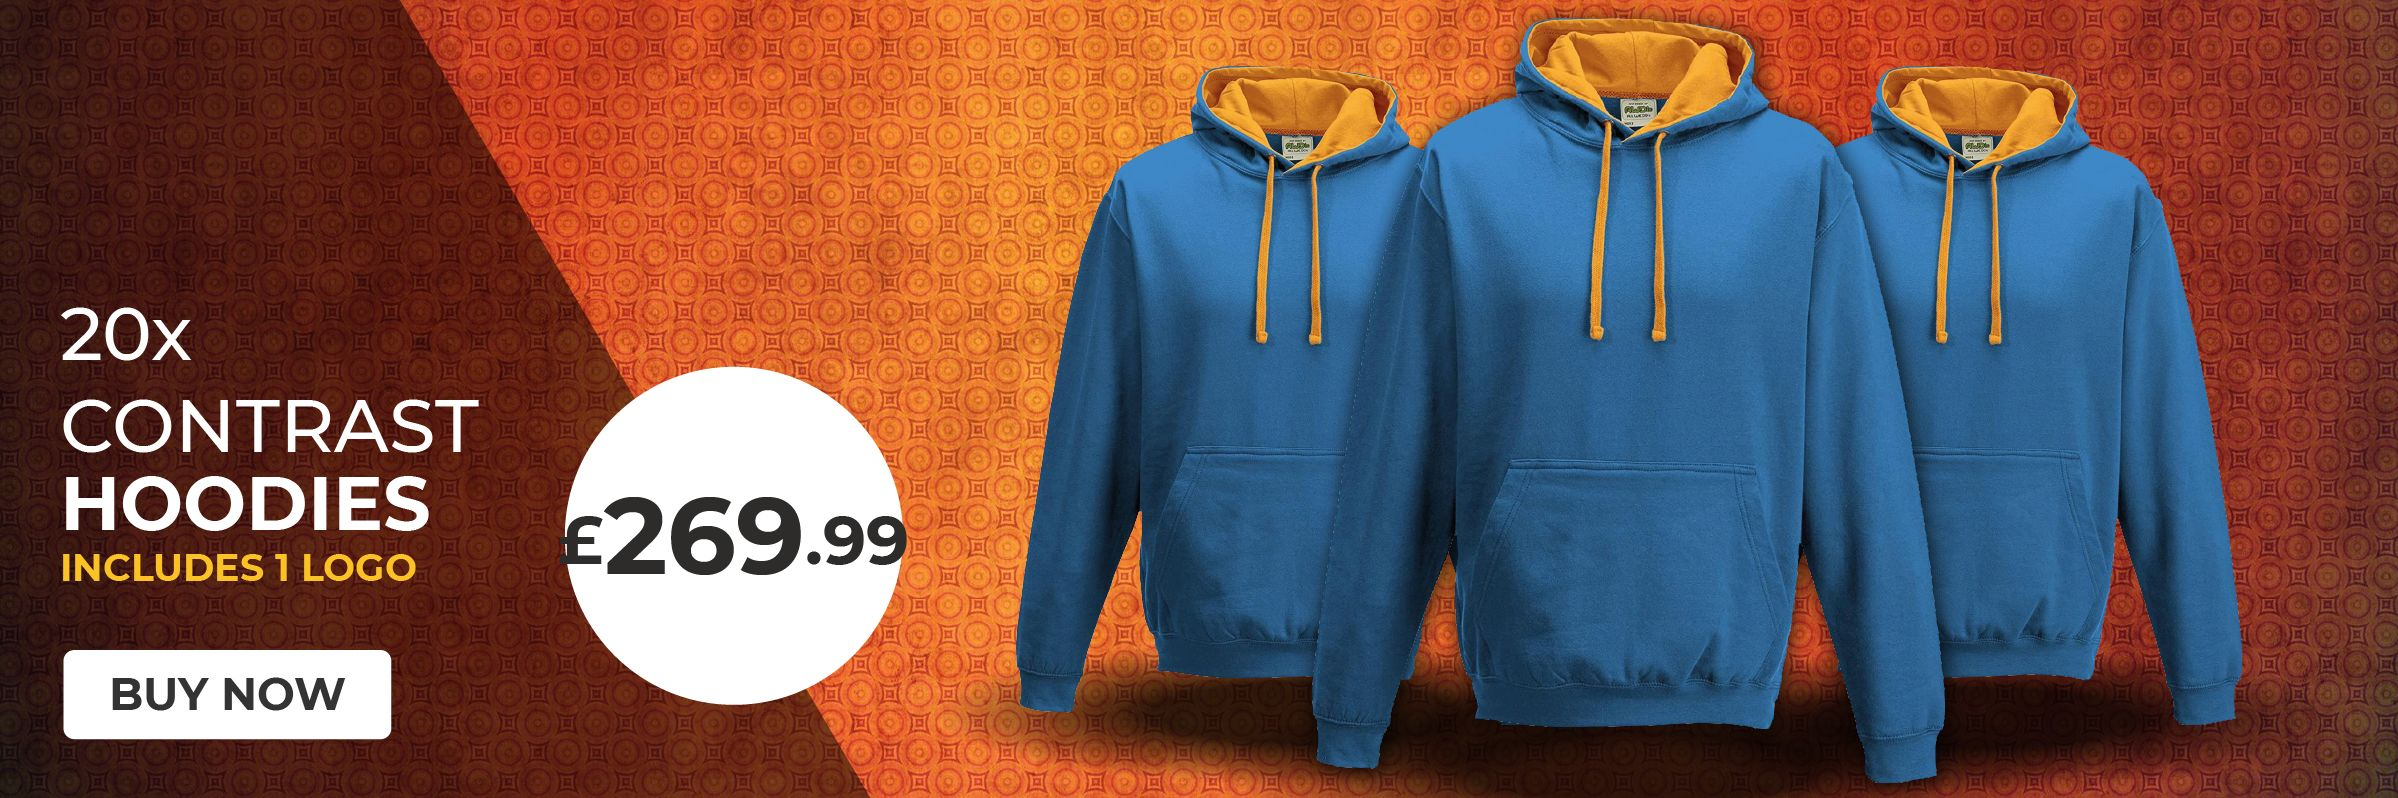 20 x Contrast Hoodies for £269.99